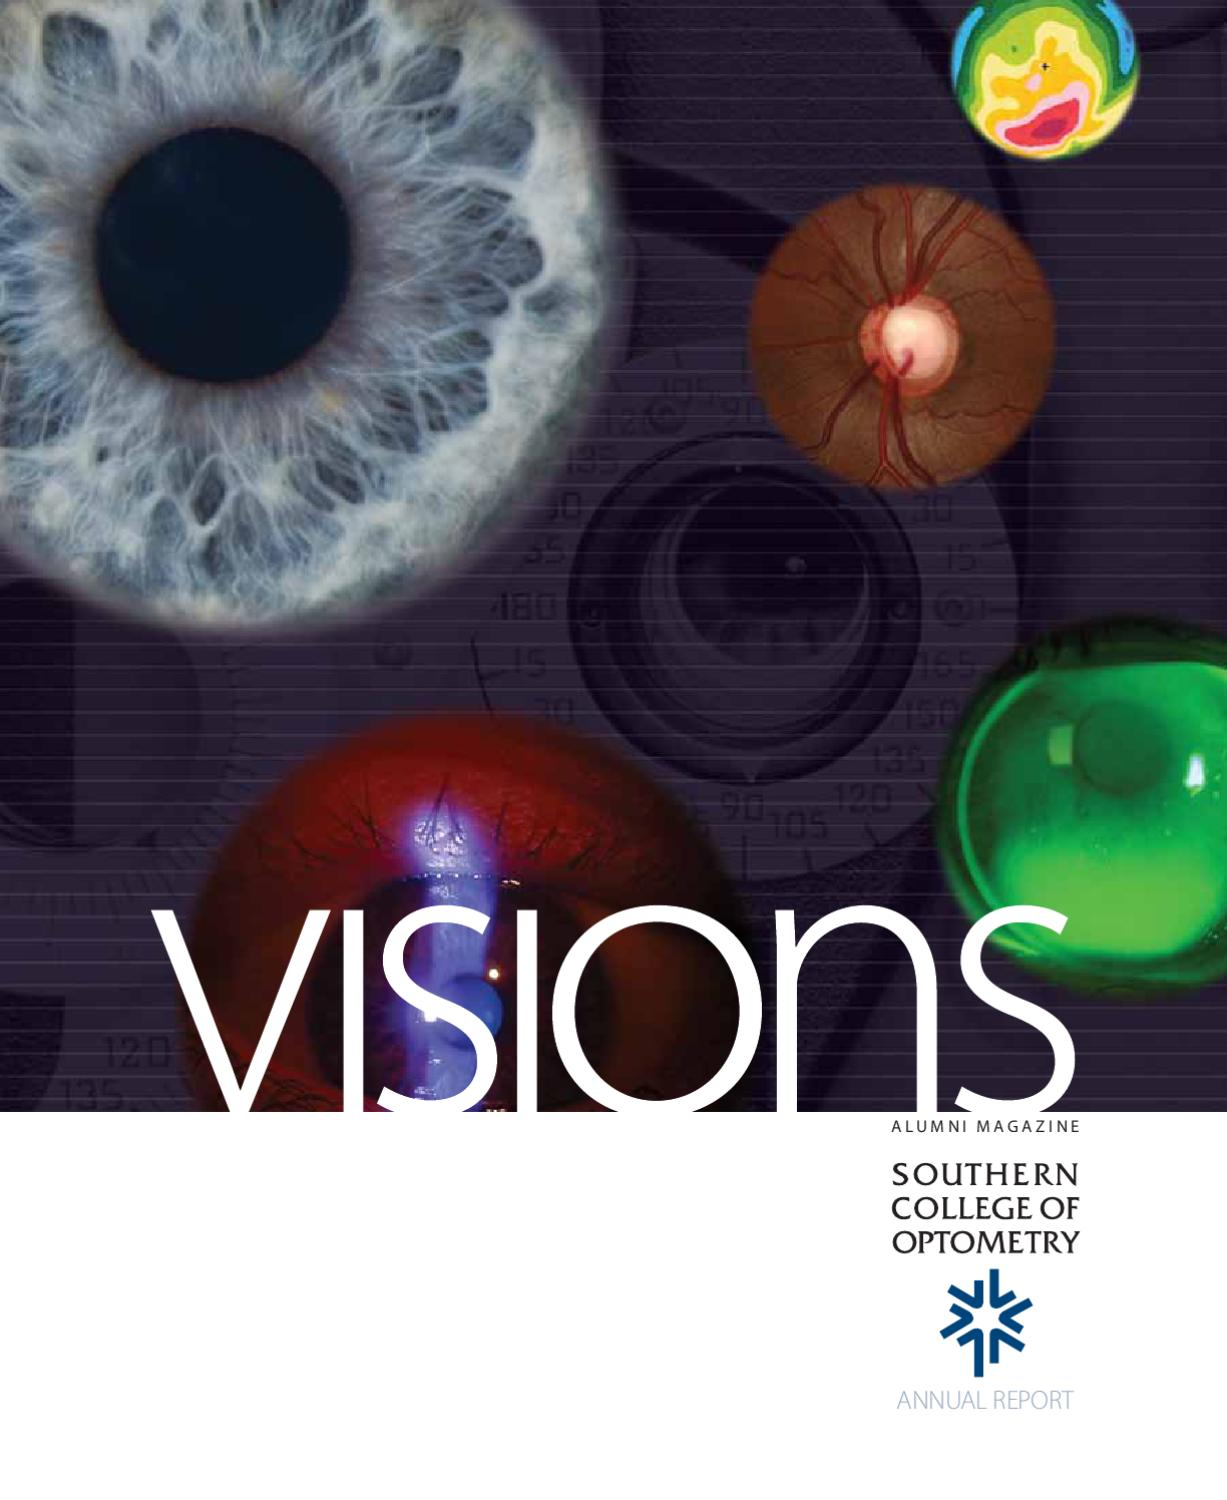 visions alumni magazine - winter 2010 - southern college of